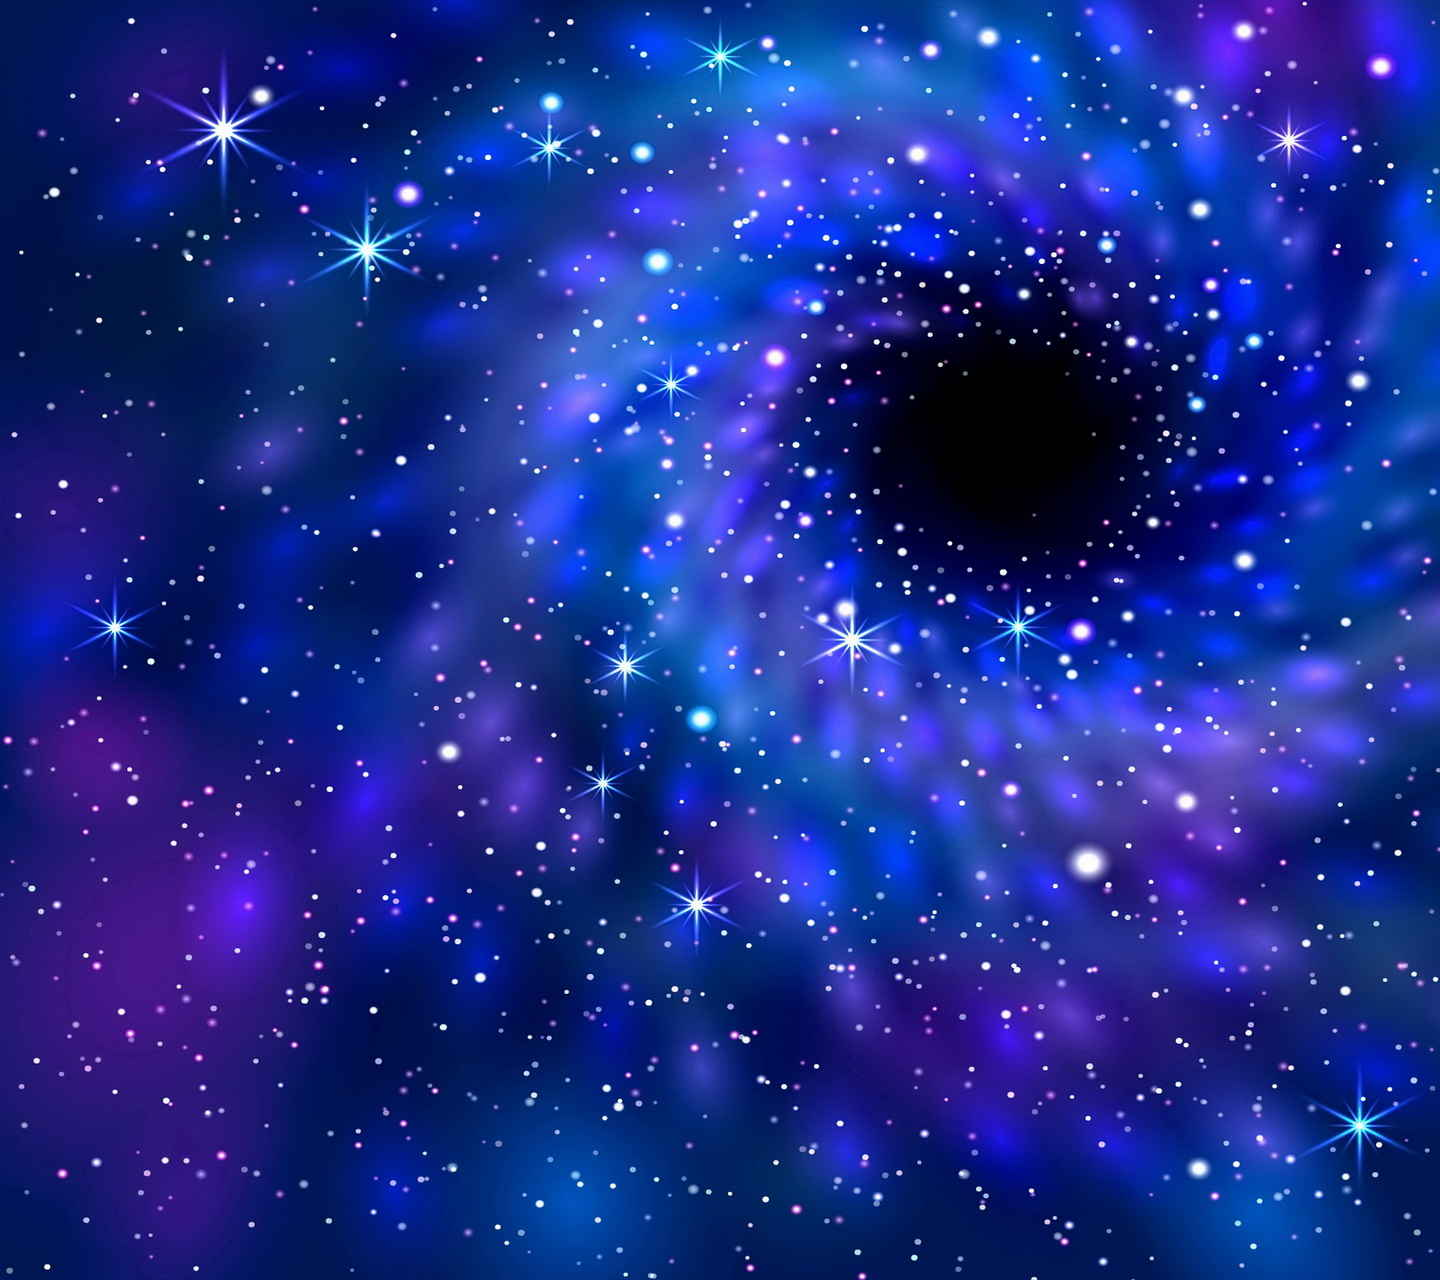 Black Hole Nebula Wallpaper